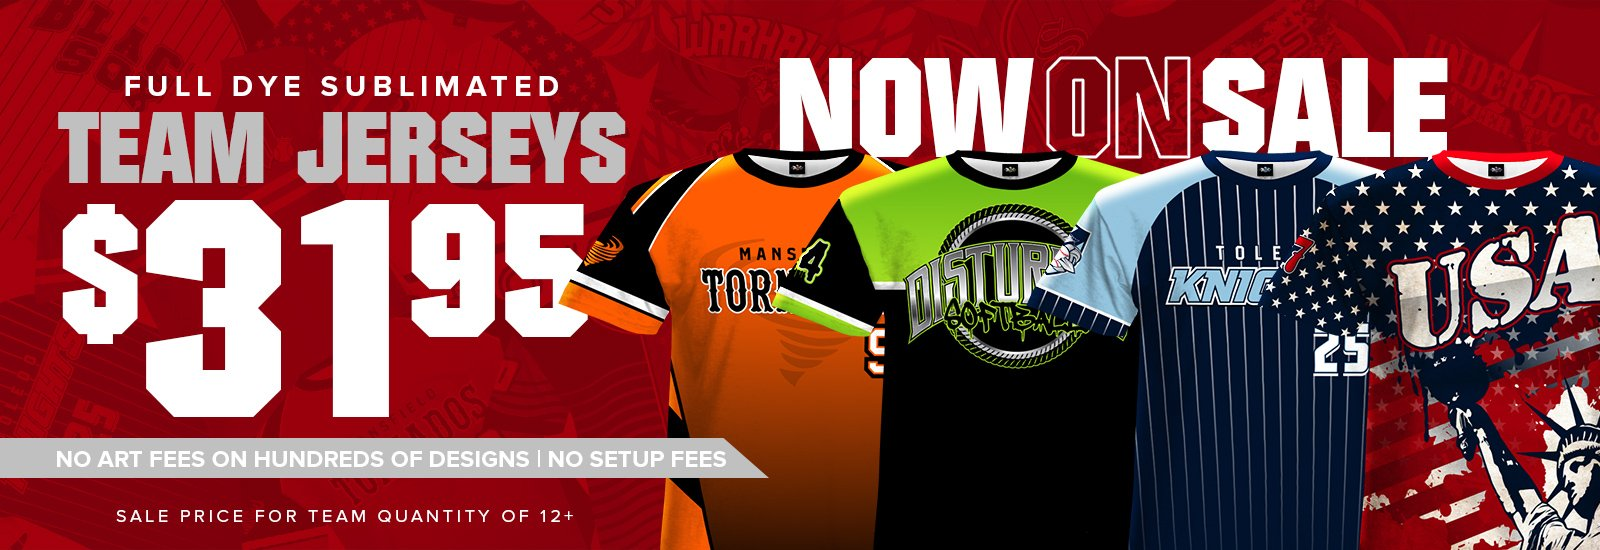 Now On Sale. Full Dye Sublimated Team Jerseys - $31.95